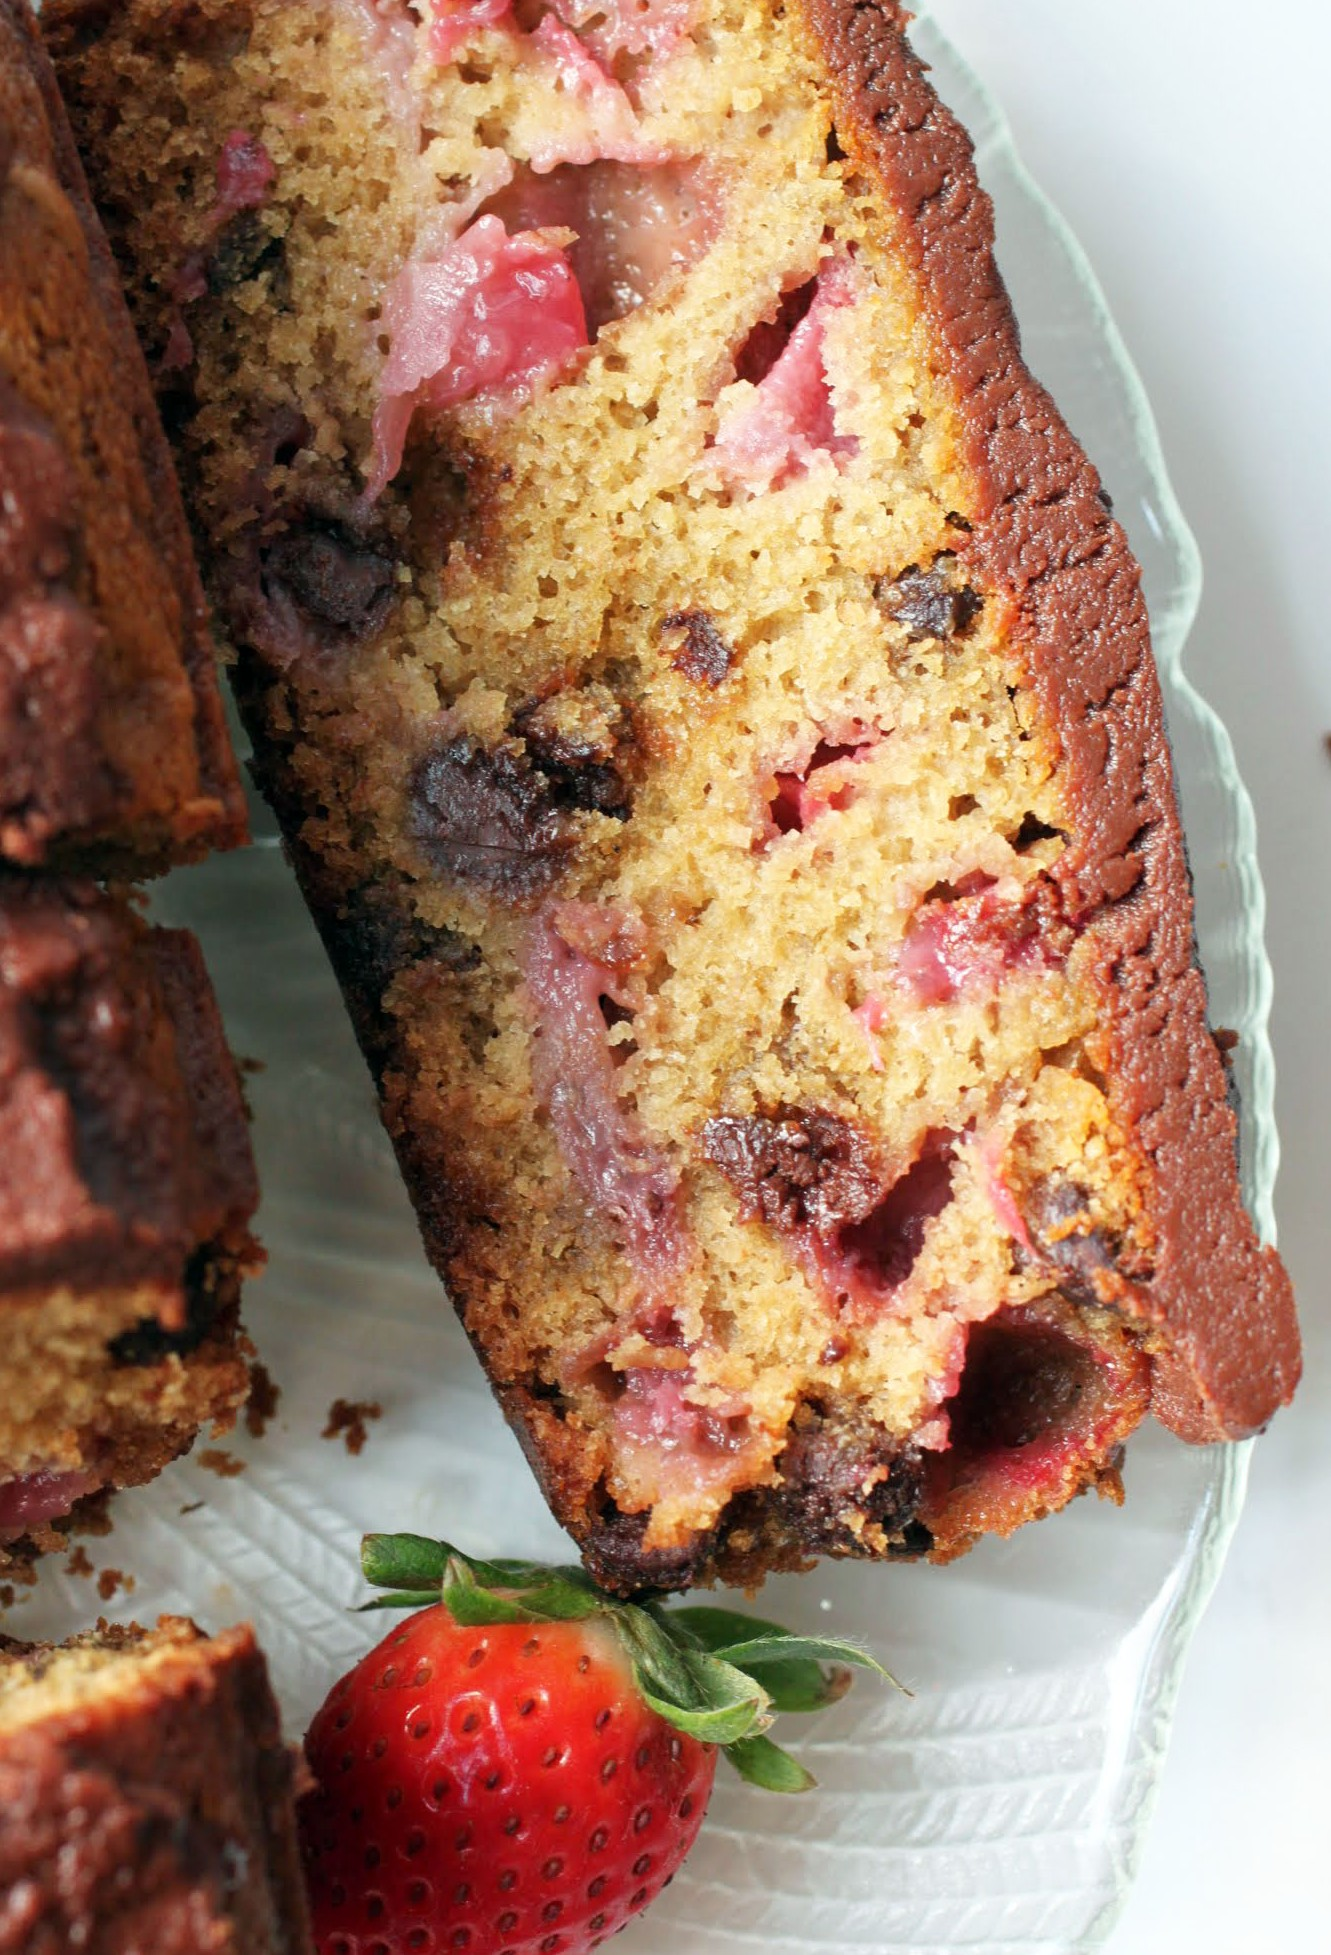 Chocolate-Covered Strawberry Bread